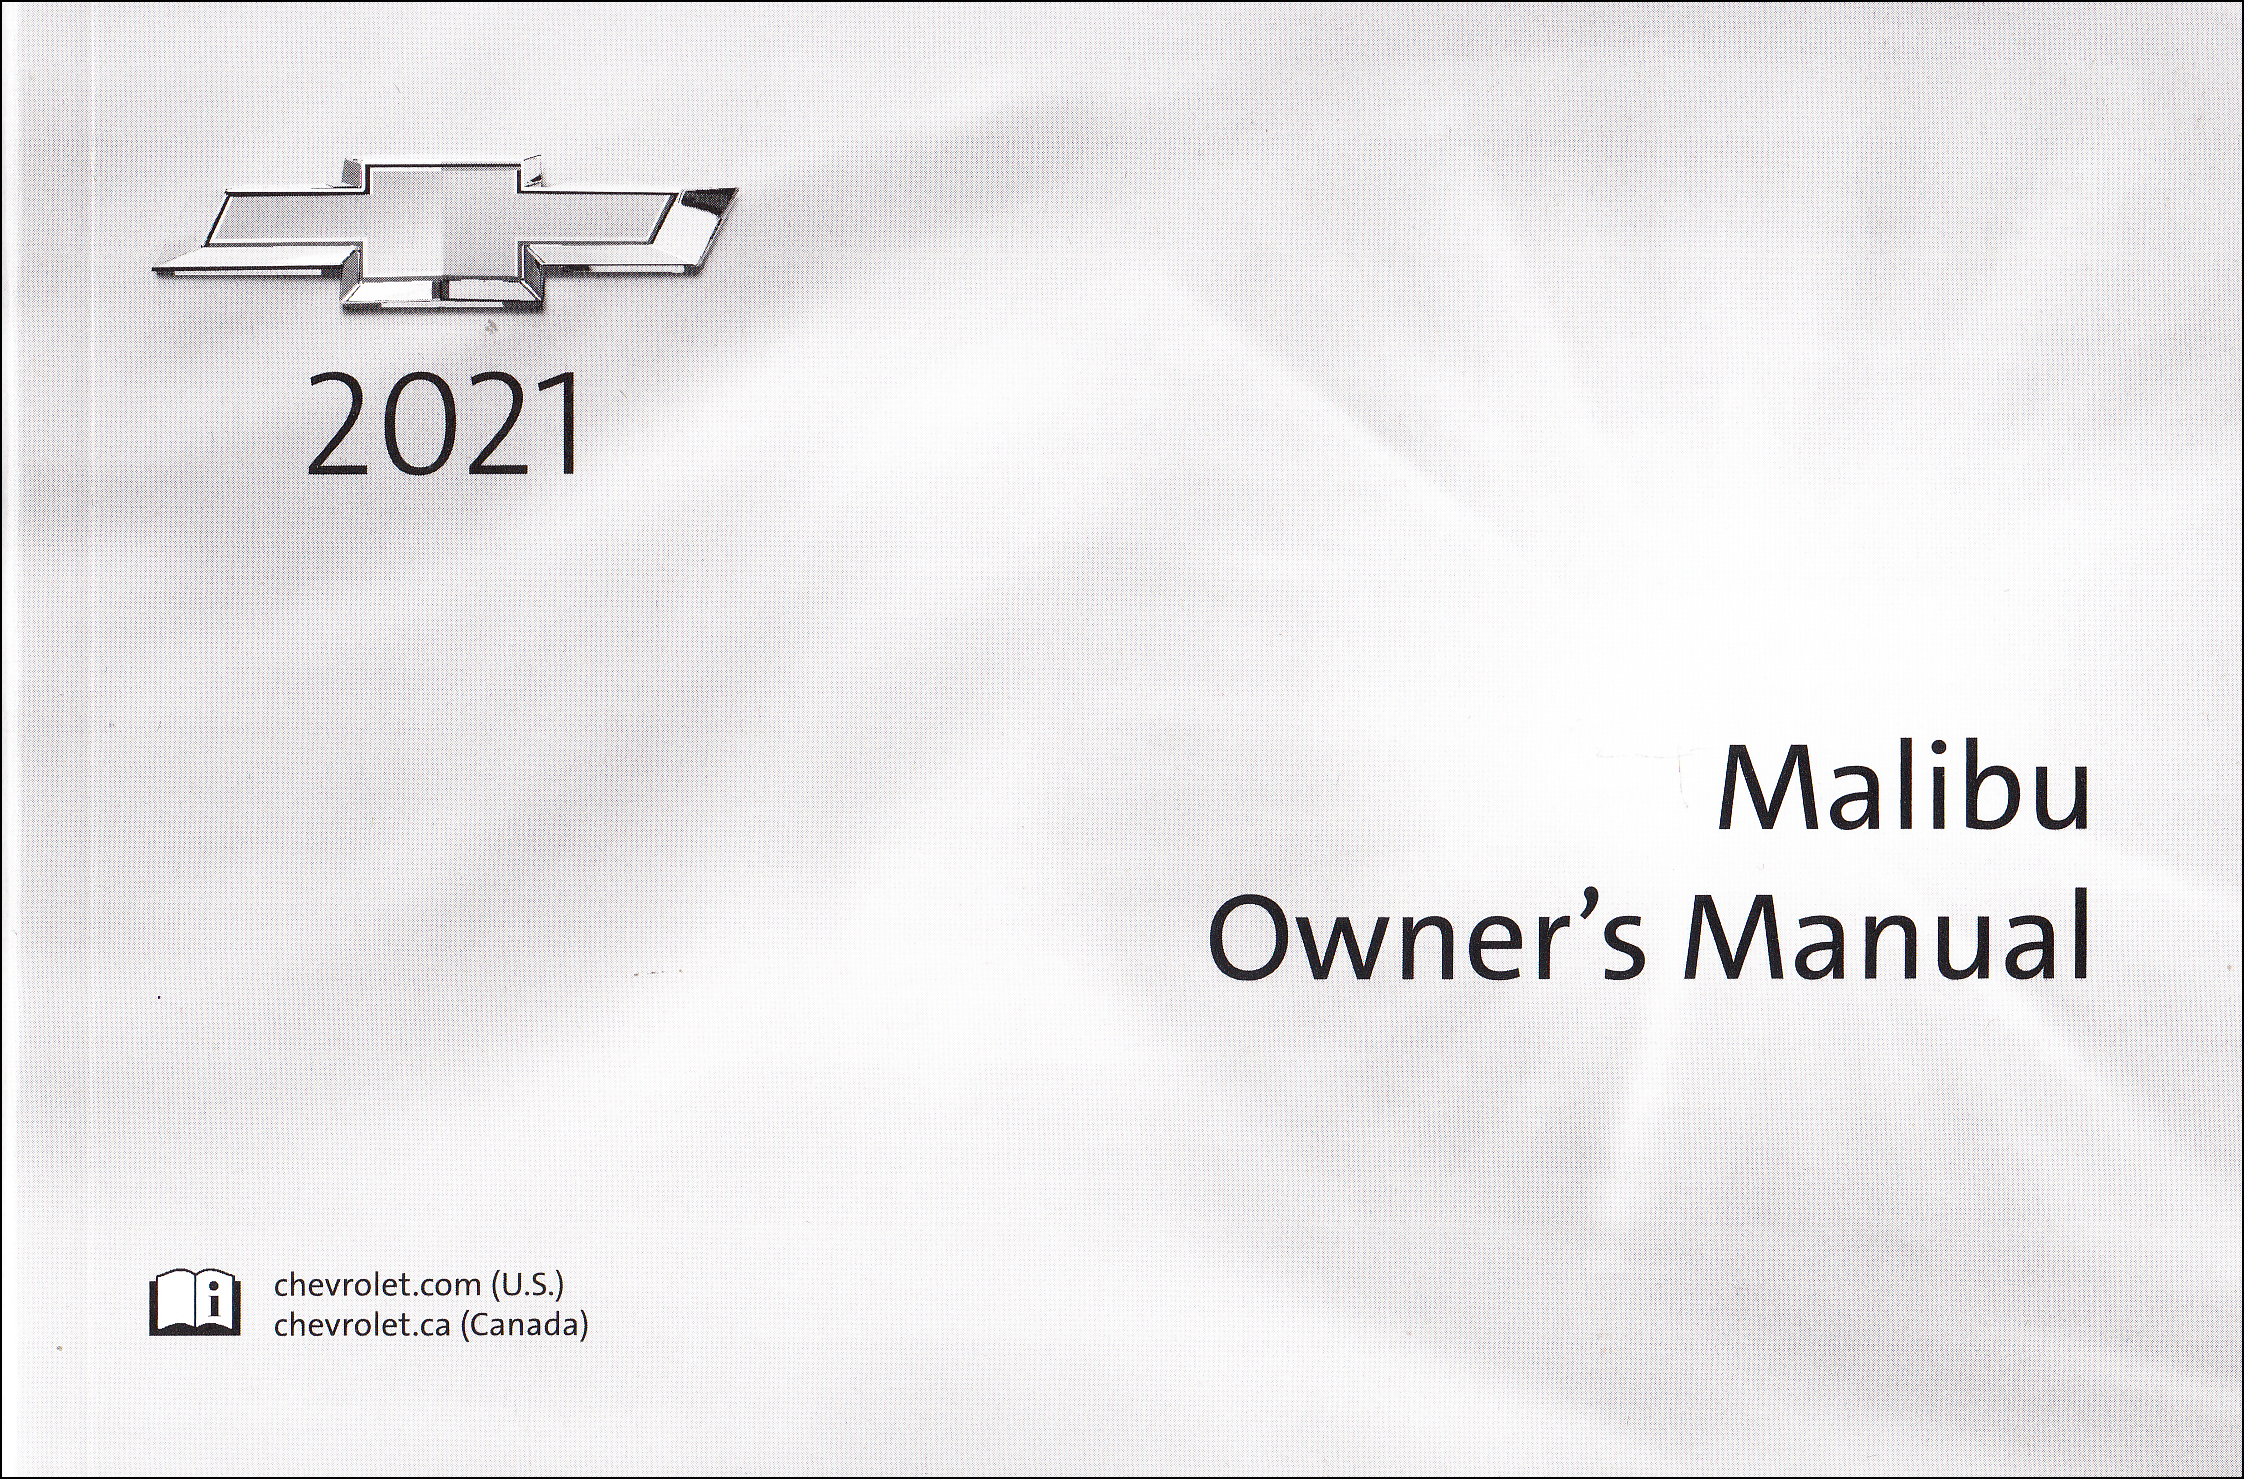 2021 Chevrolet Malibu Owner's Manual Original